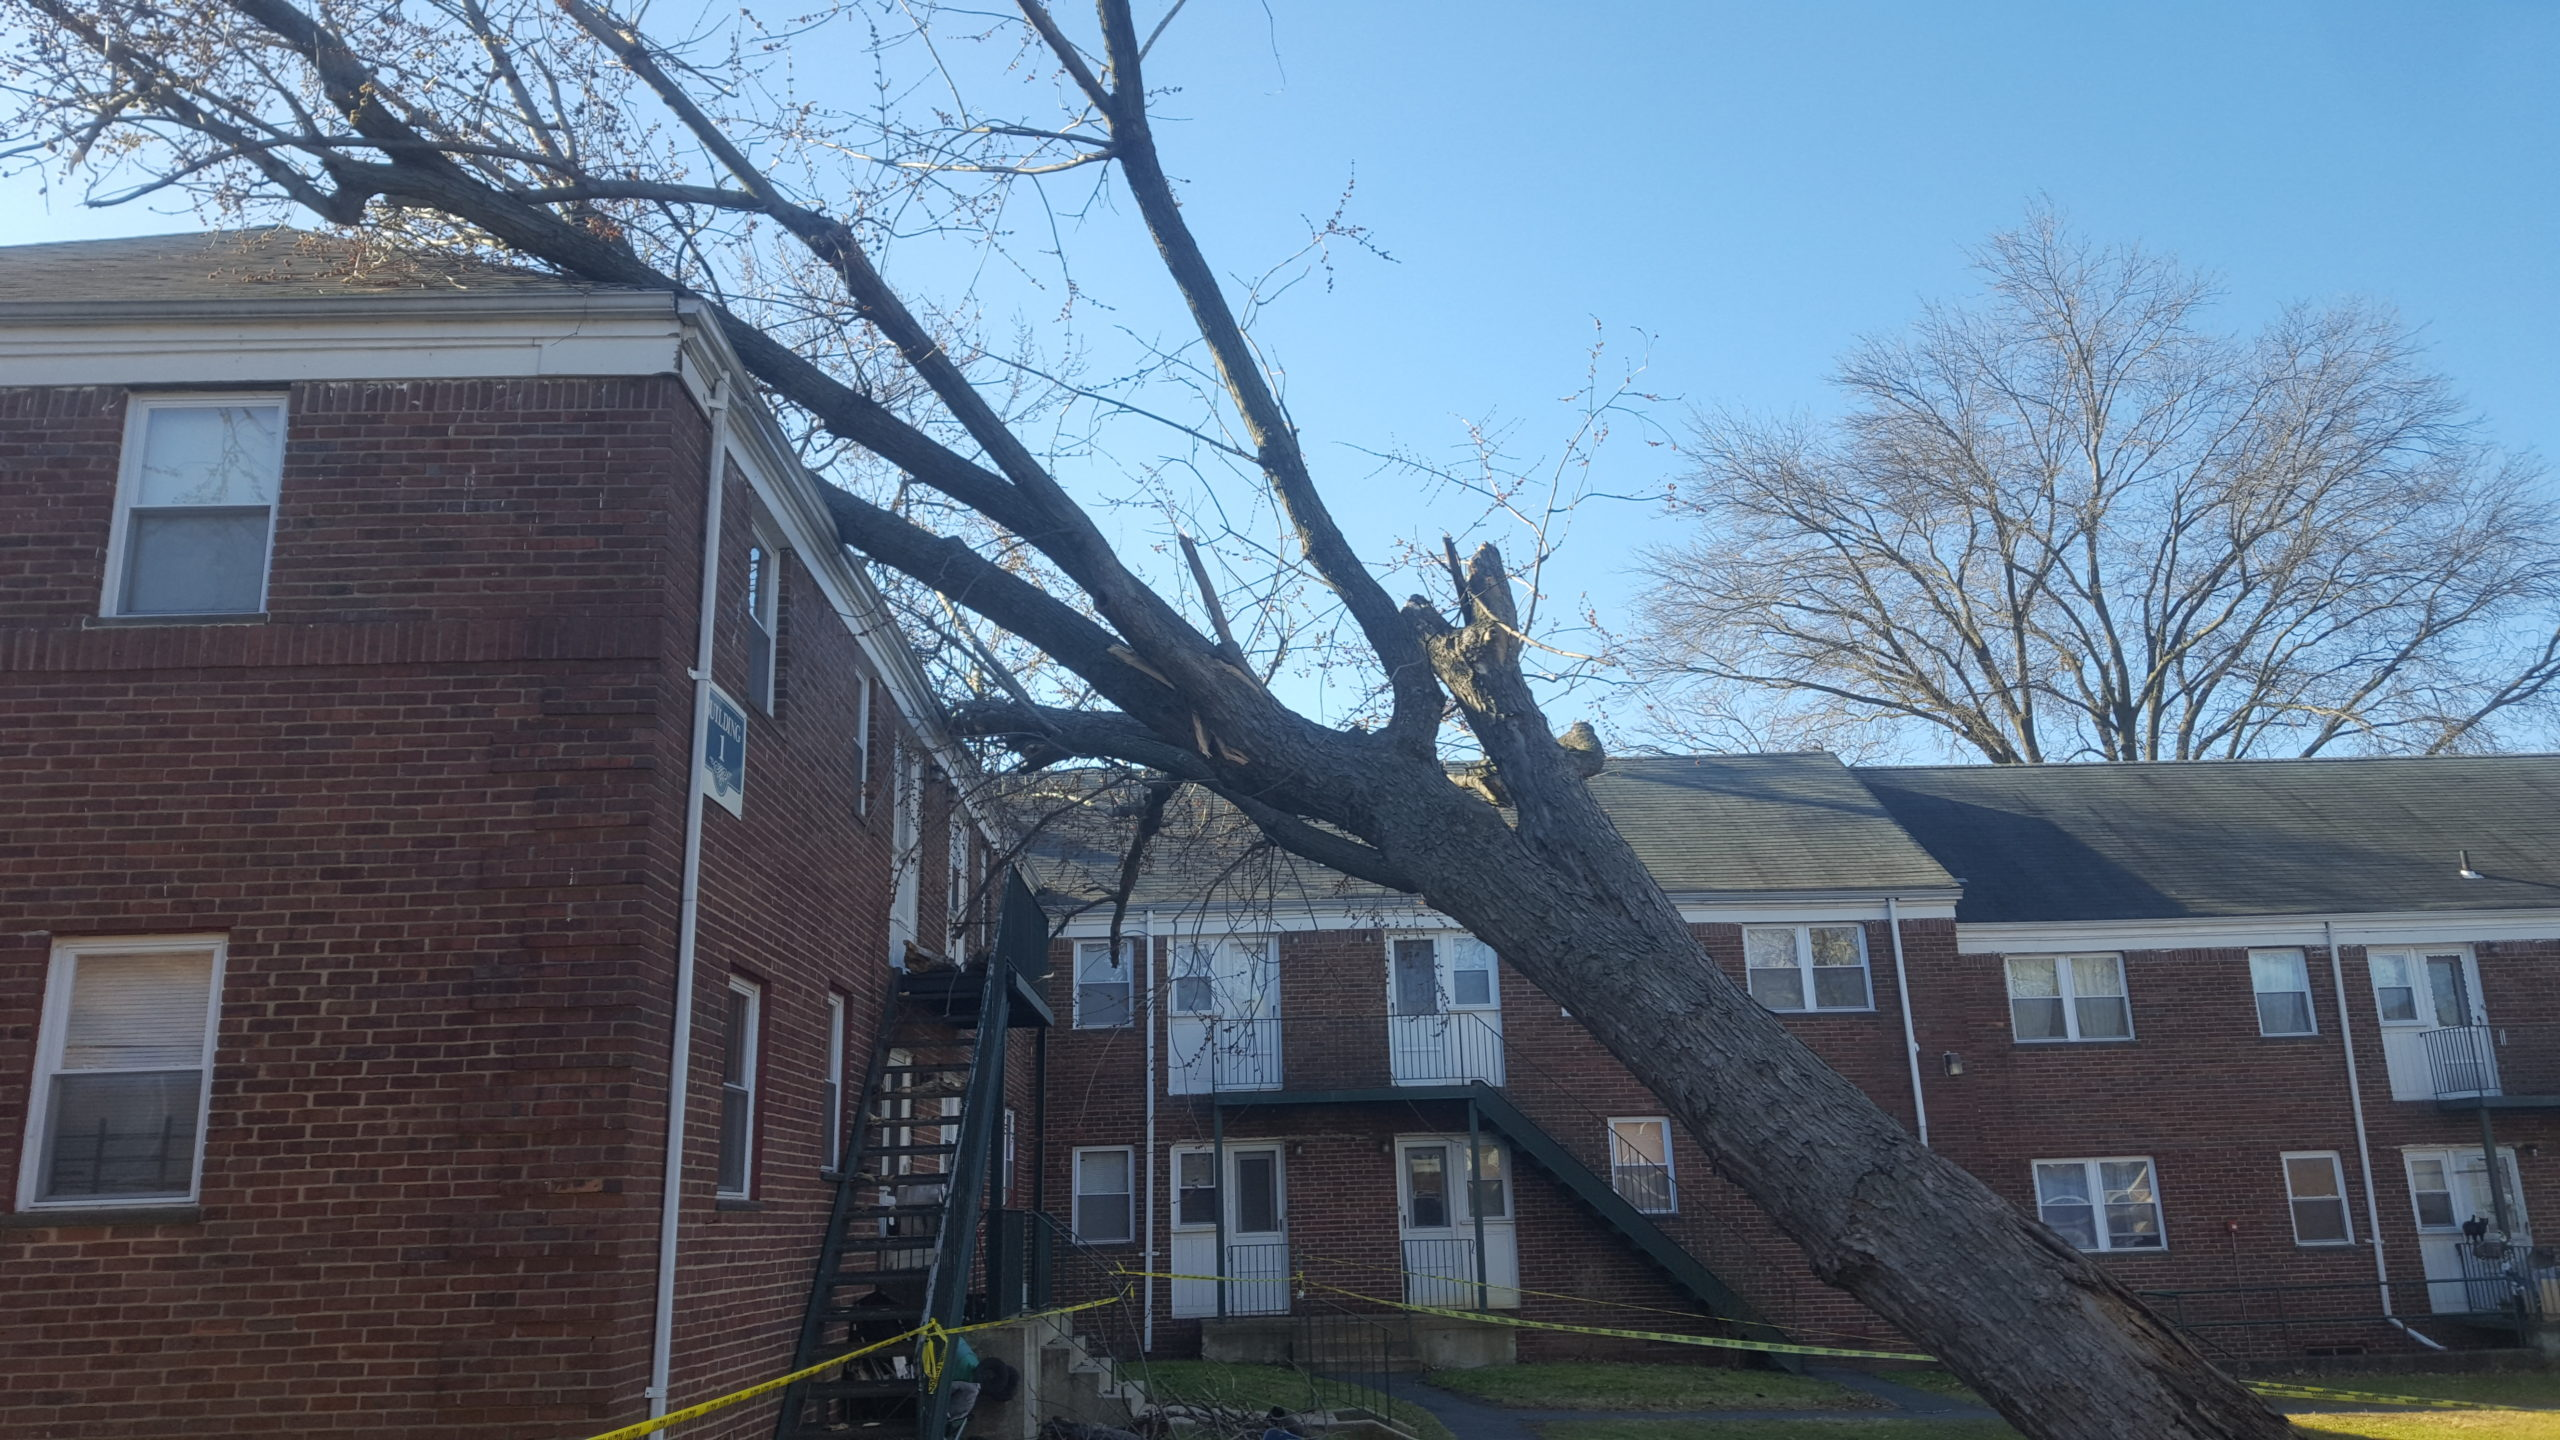 Tree Fell on Residence - NJ Storm Damage Services